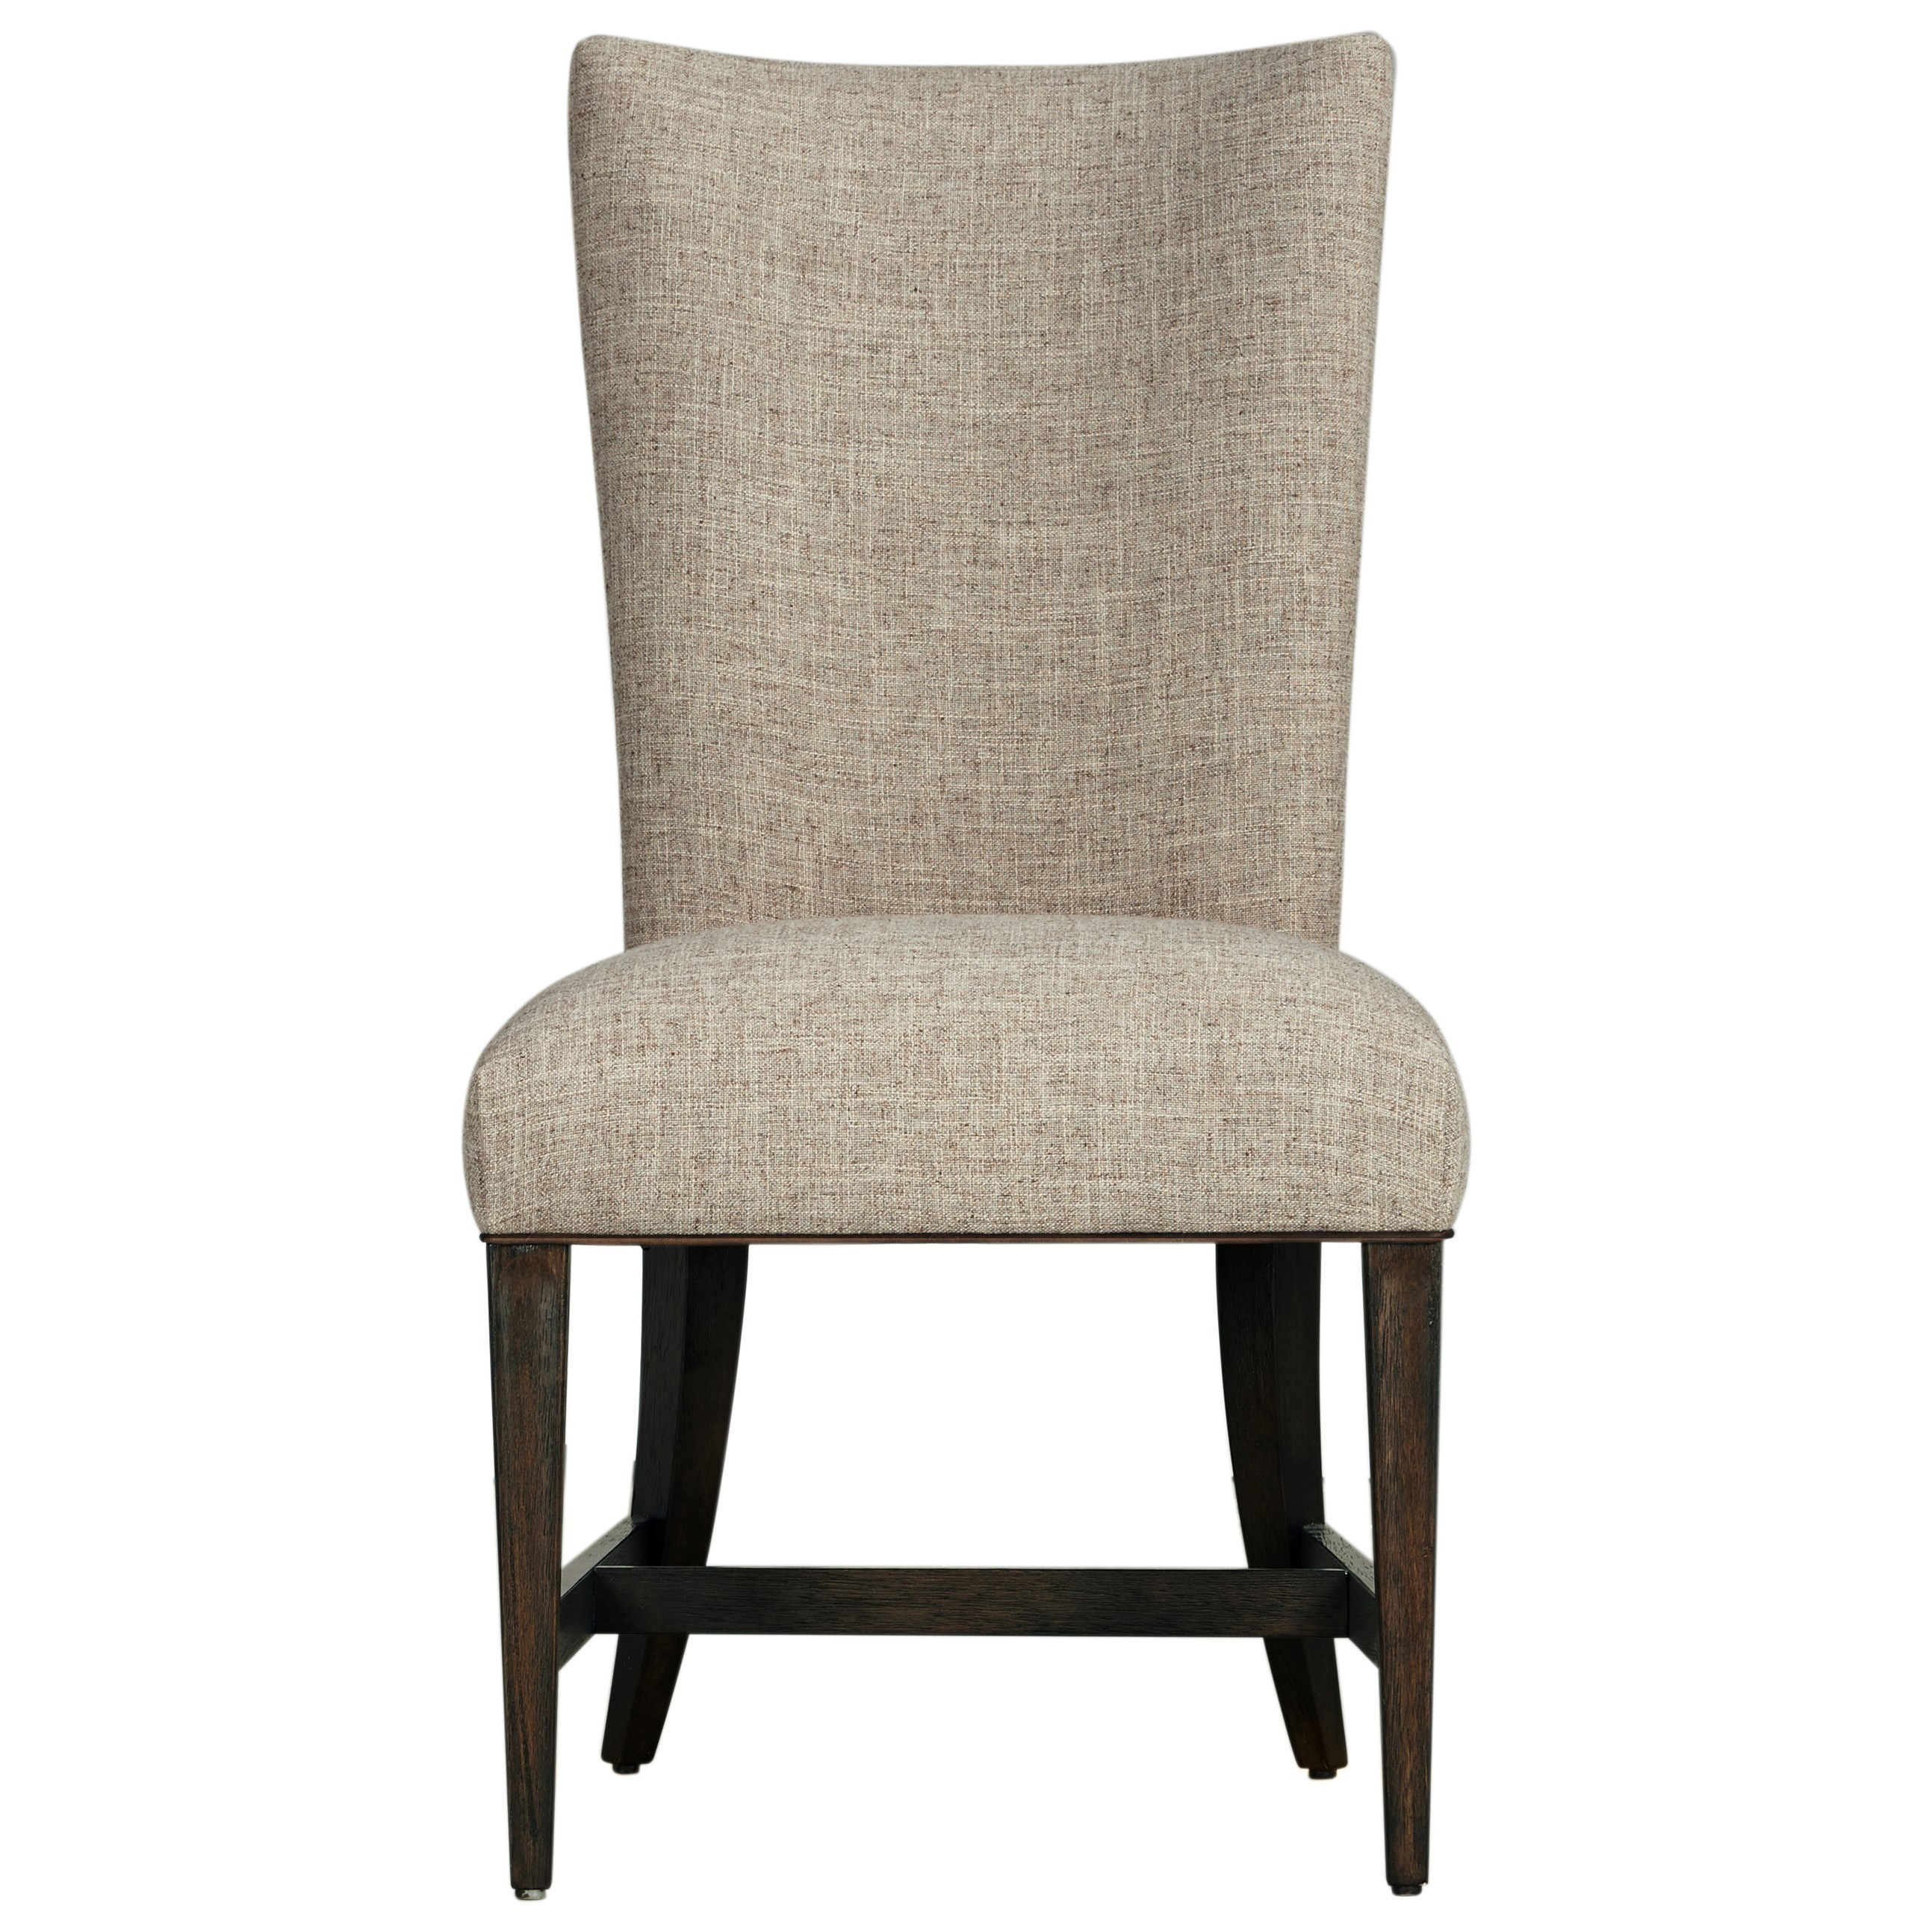 WoodWright Racine Upholstered Side Chair by A.R.T. Furniture Inc at Michael Alan Furniture & Design